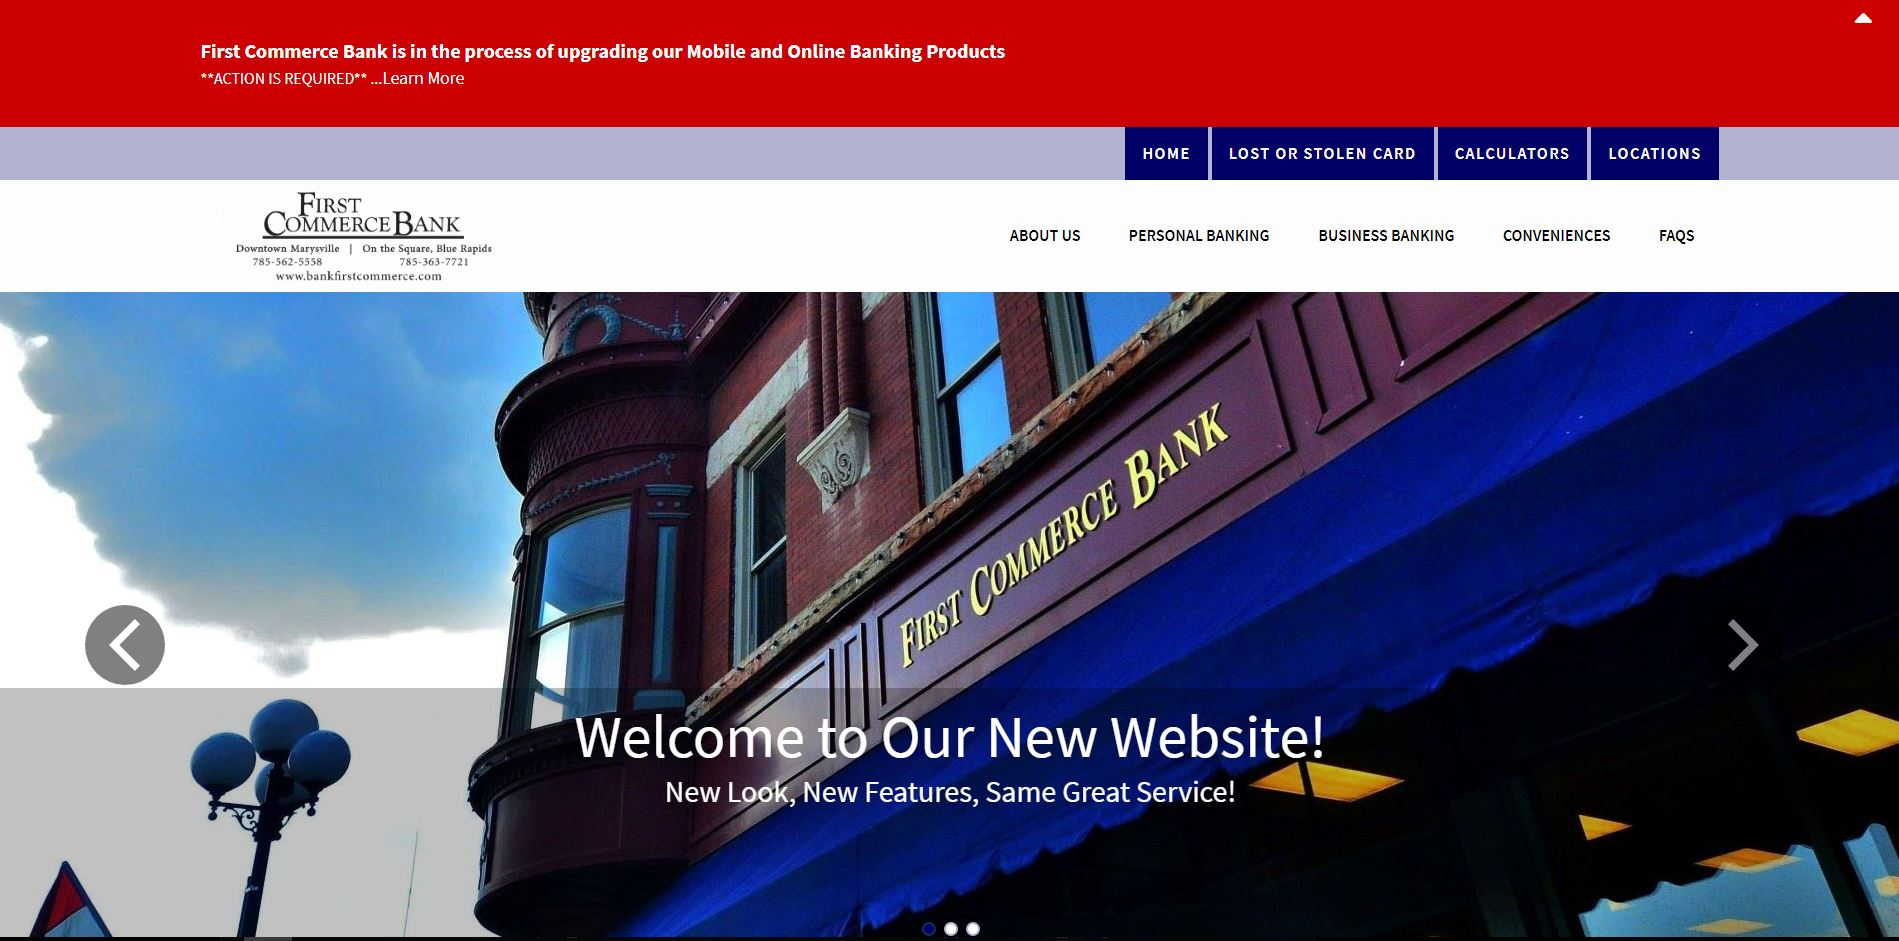 First Commerce Bank website home page